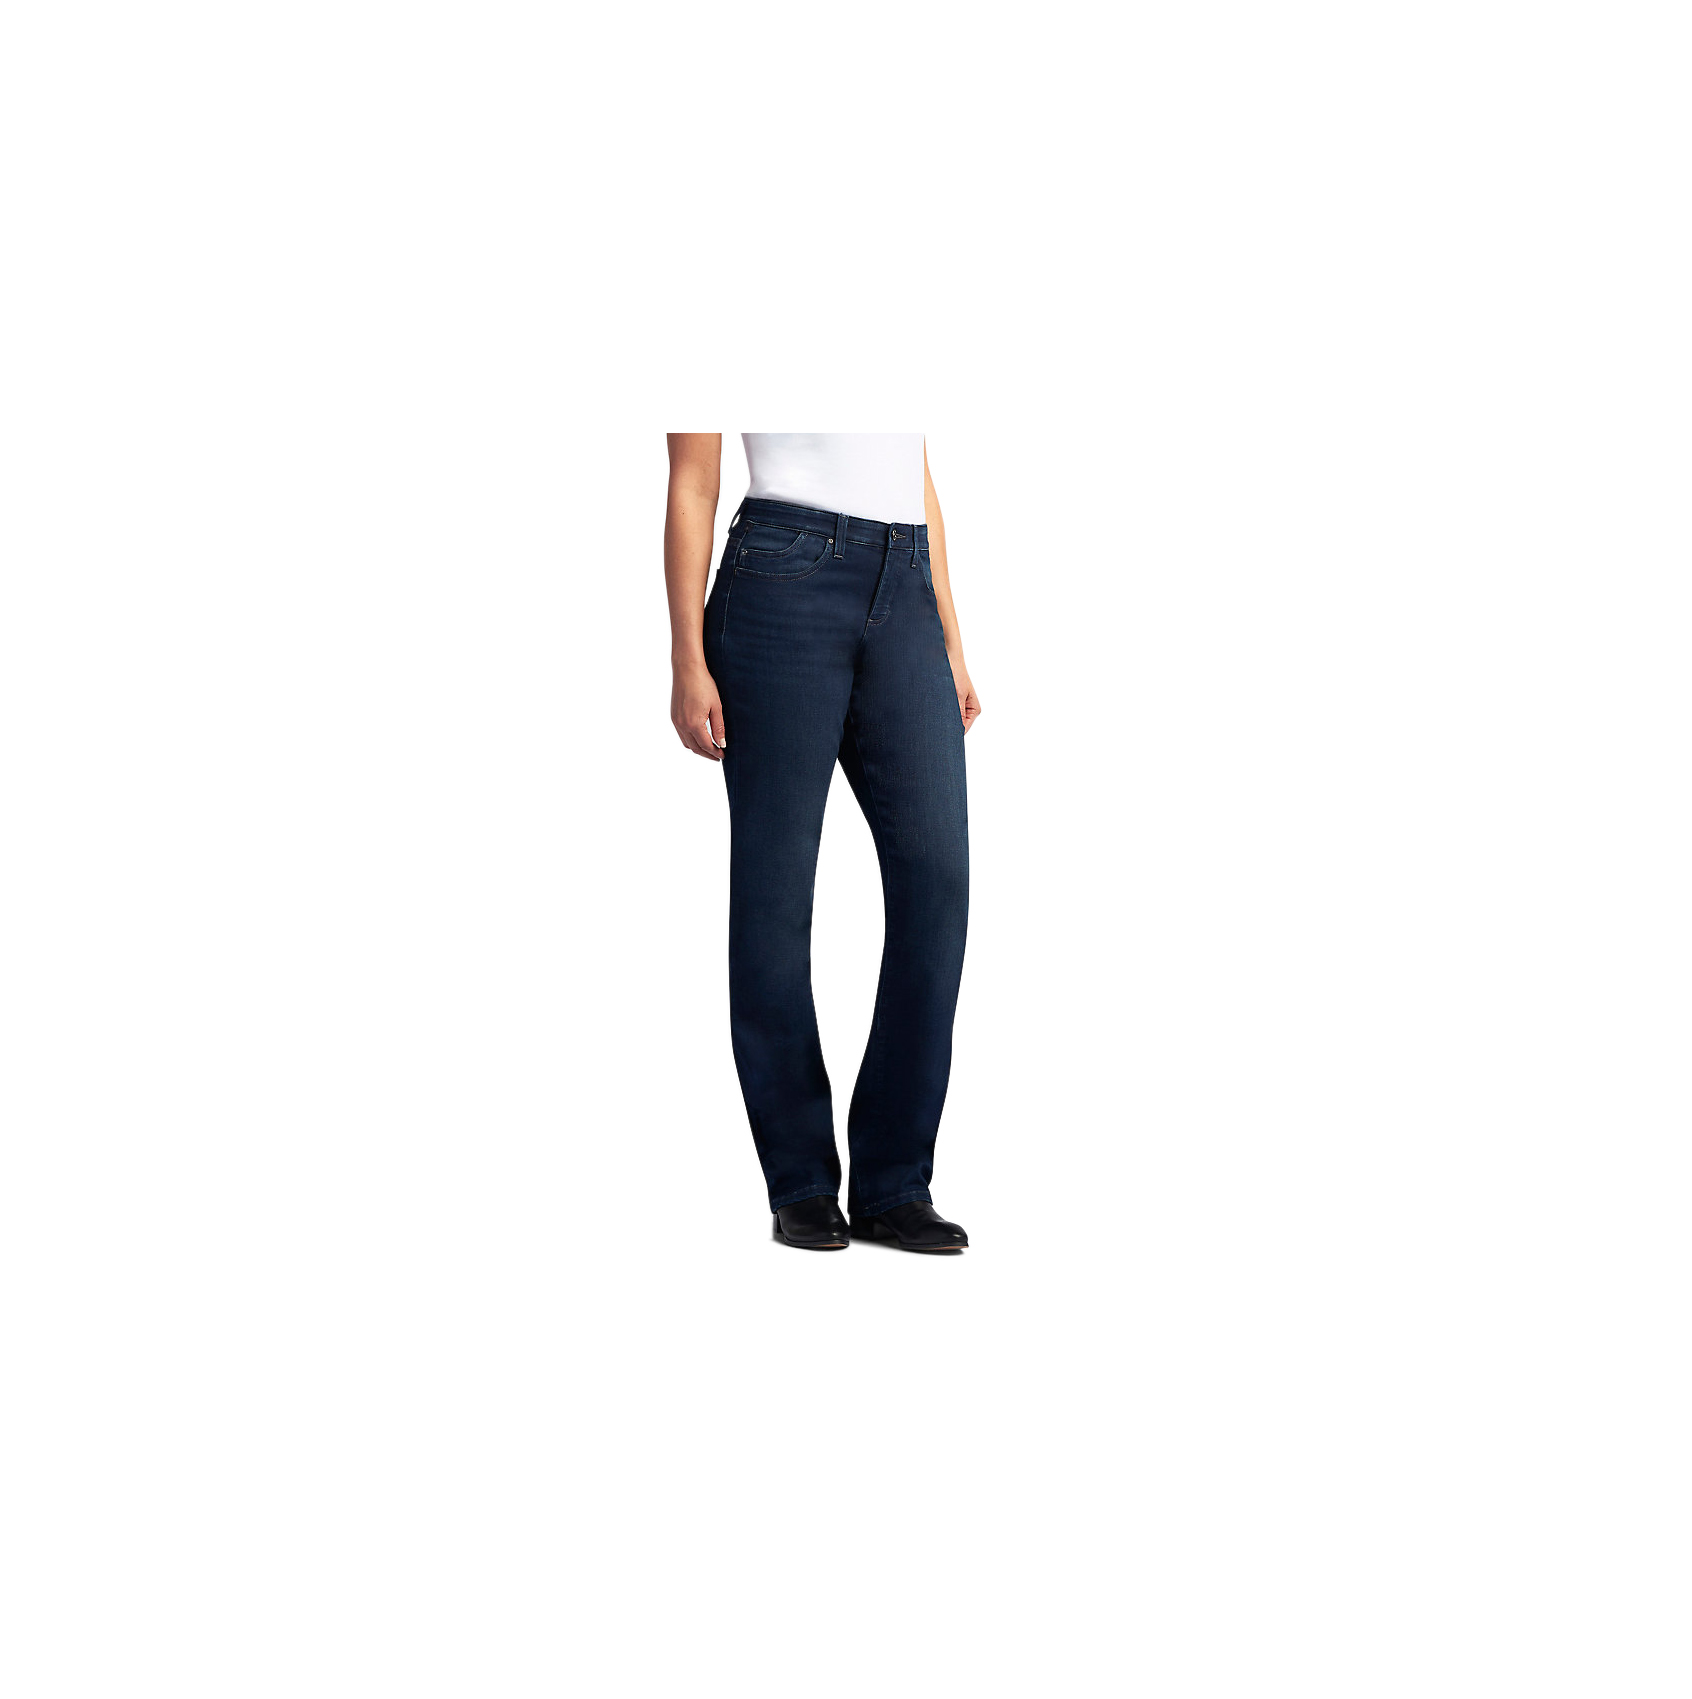 Best-Fitting Jeans for Your Shape for Under $70   Real Simple